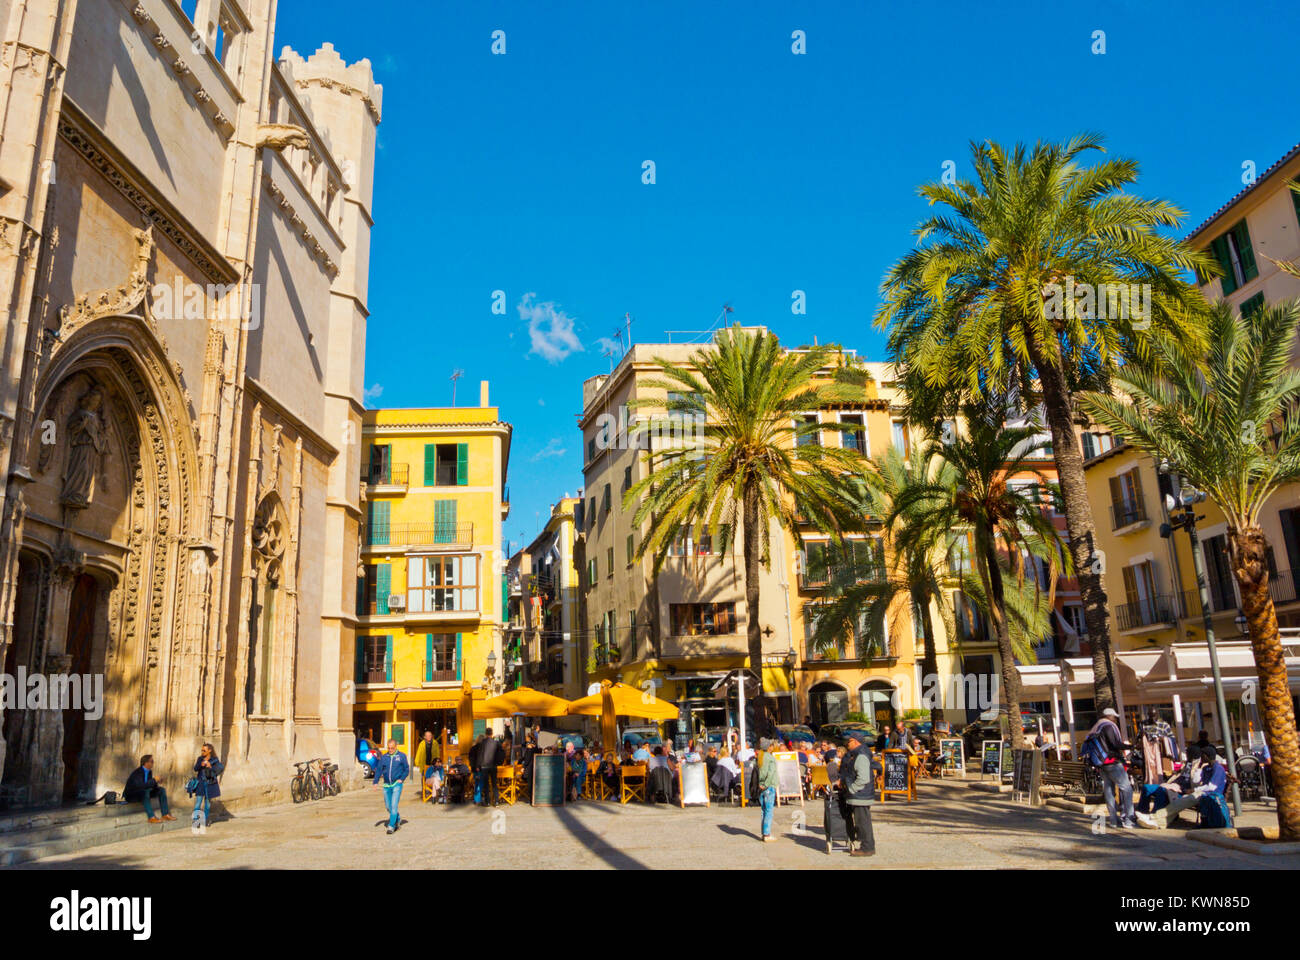 Placa de la Llotja, Palma, Mallorca, Balearic islands, Spain Stock Photo